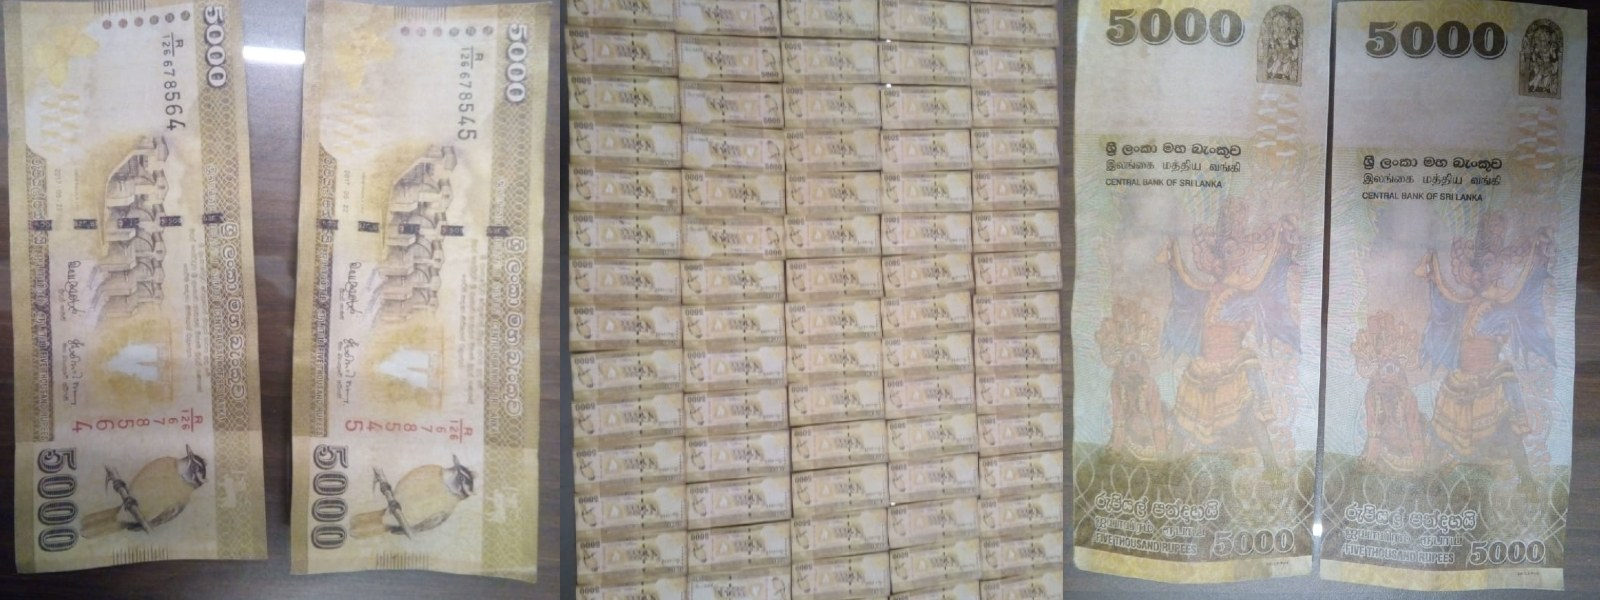 COUNTERFEIT CURRENCY RING BUSTED: POLICE